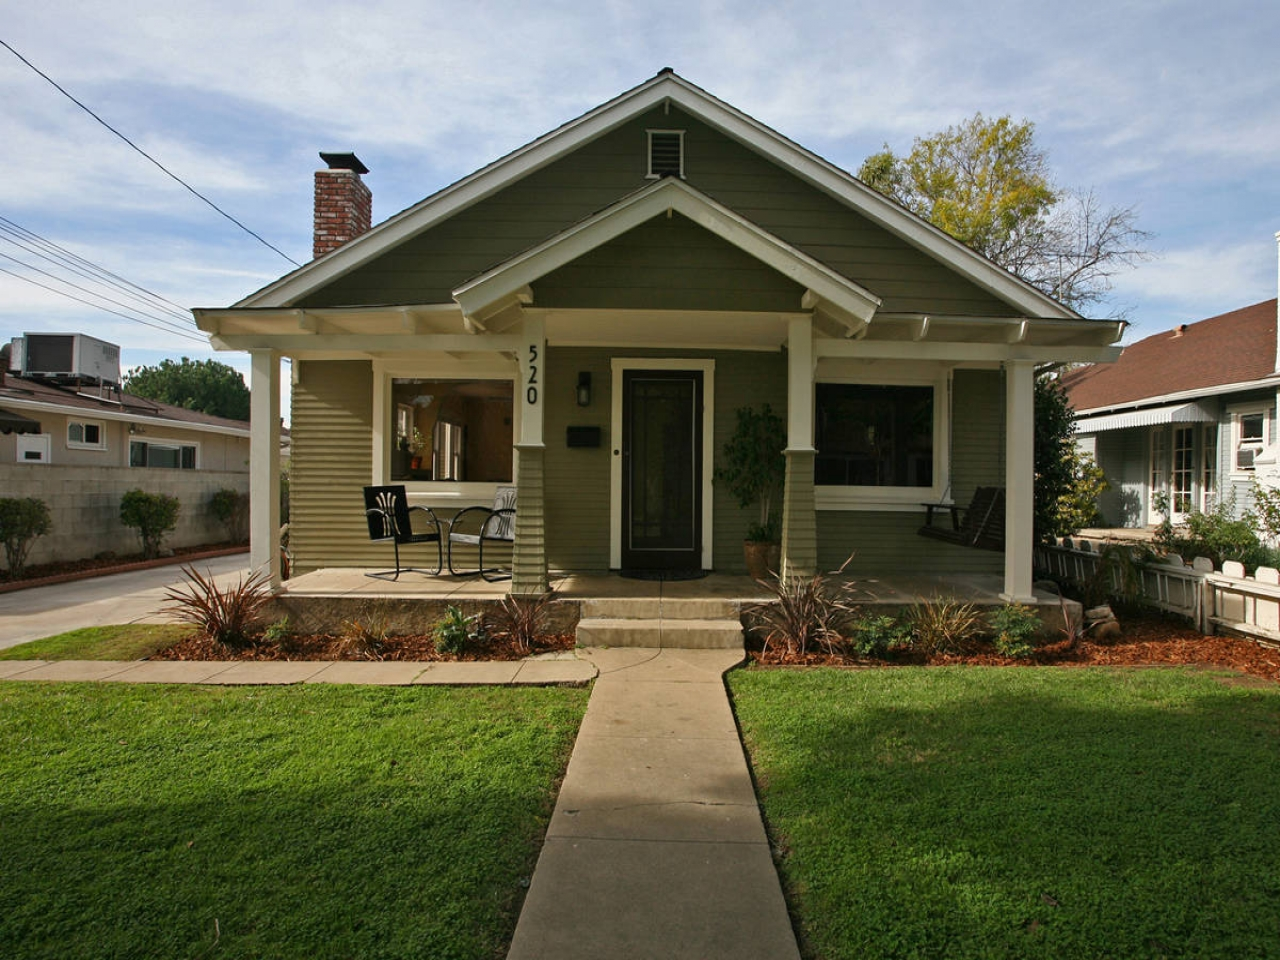 California bungalow style house modern bungalow style - What is a bungalow home ...